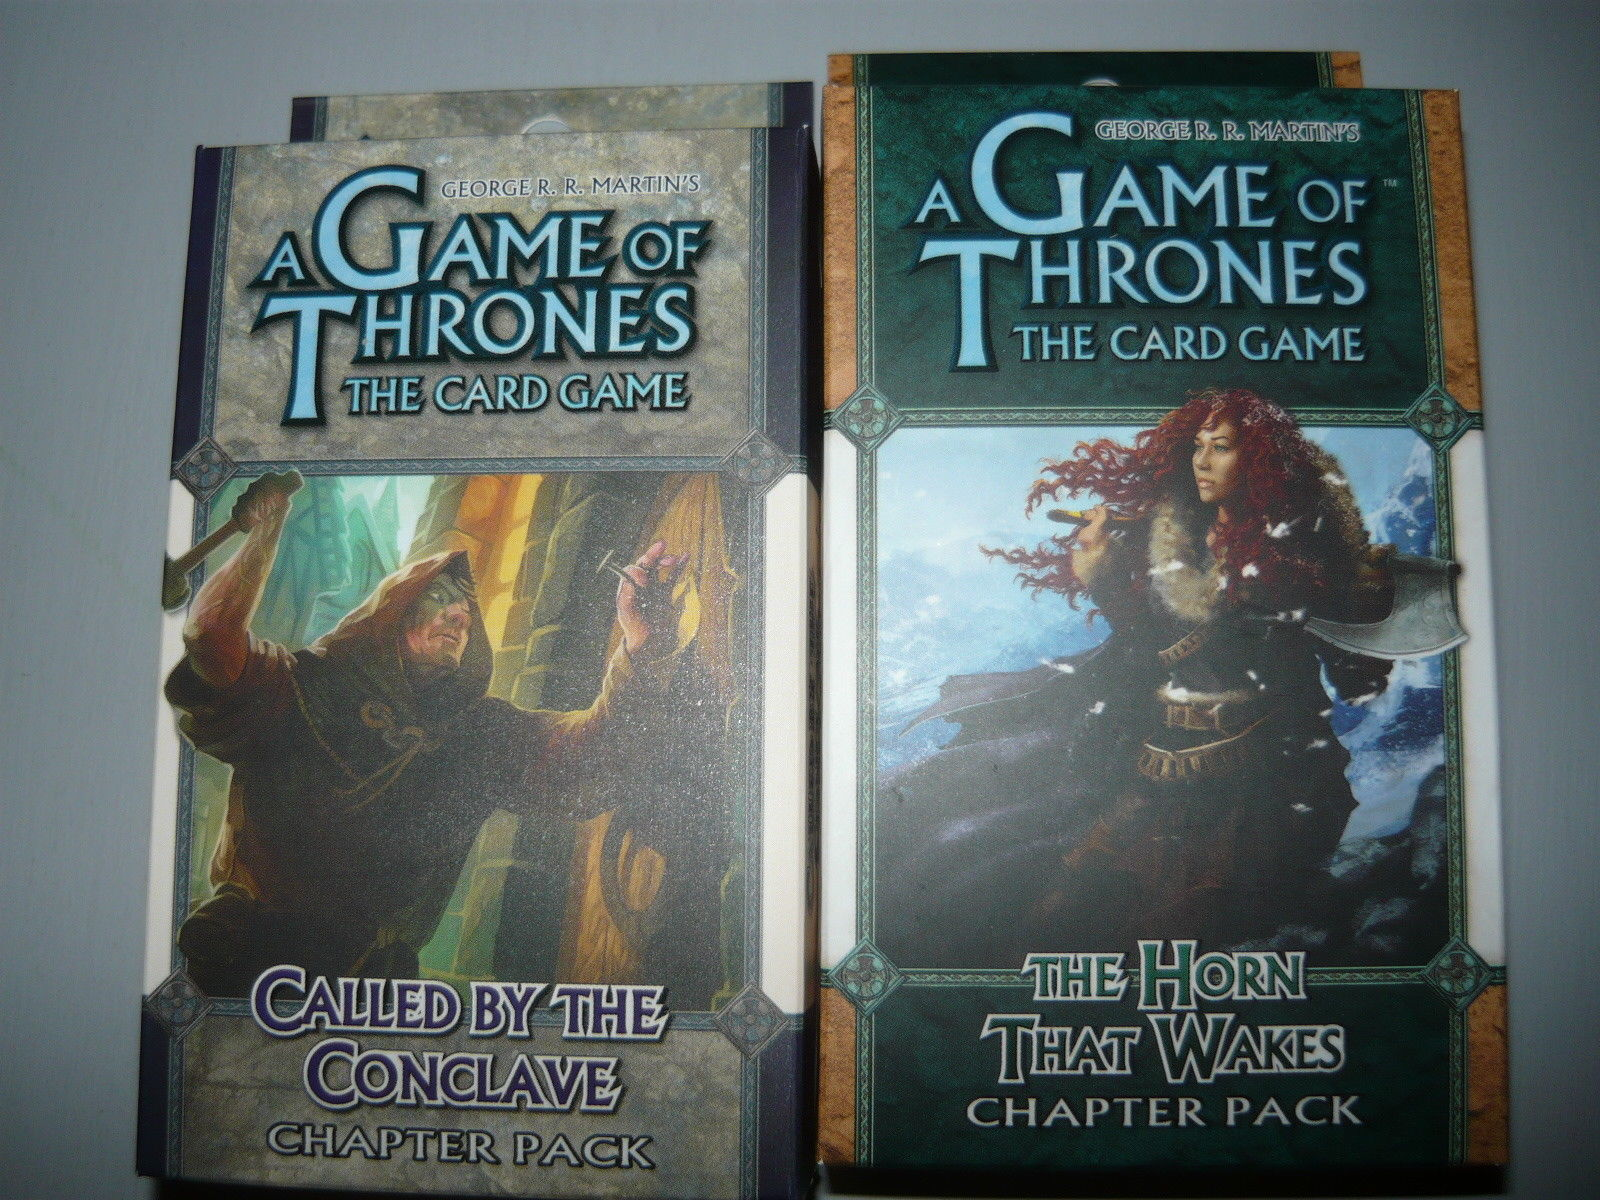 A Game of Thrones chapter pack lot 2 the horn that wakes called by the conclave